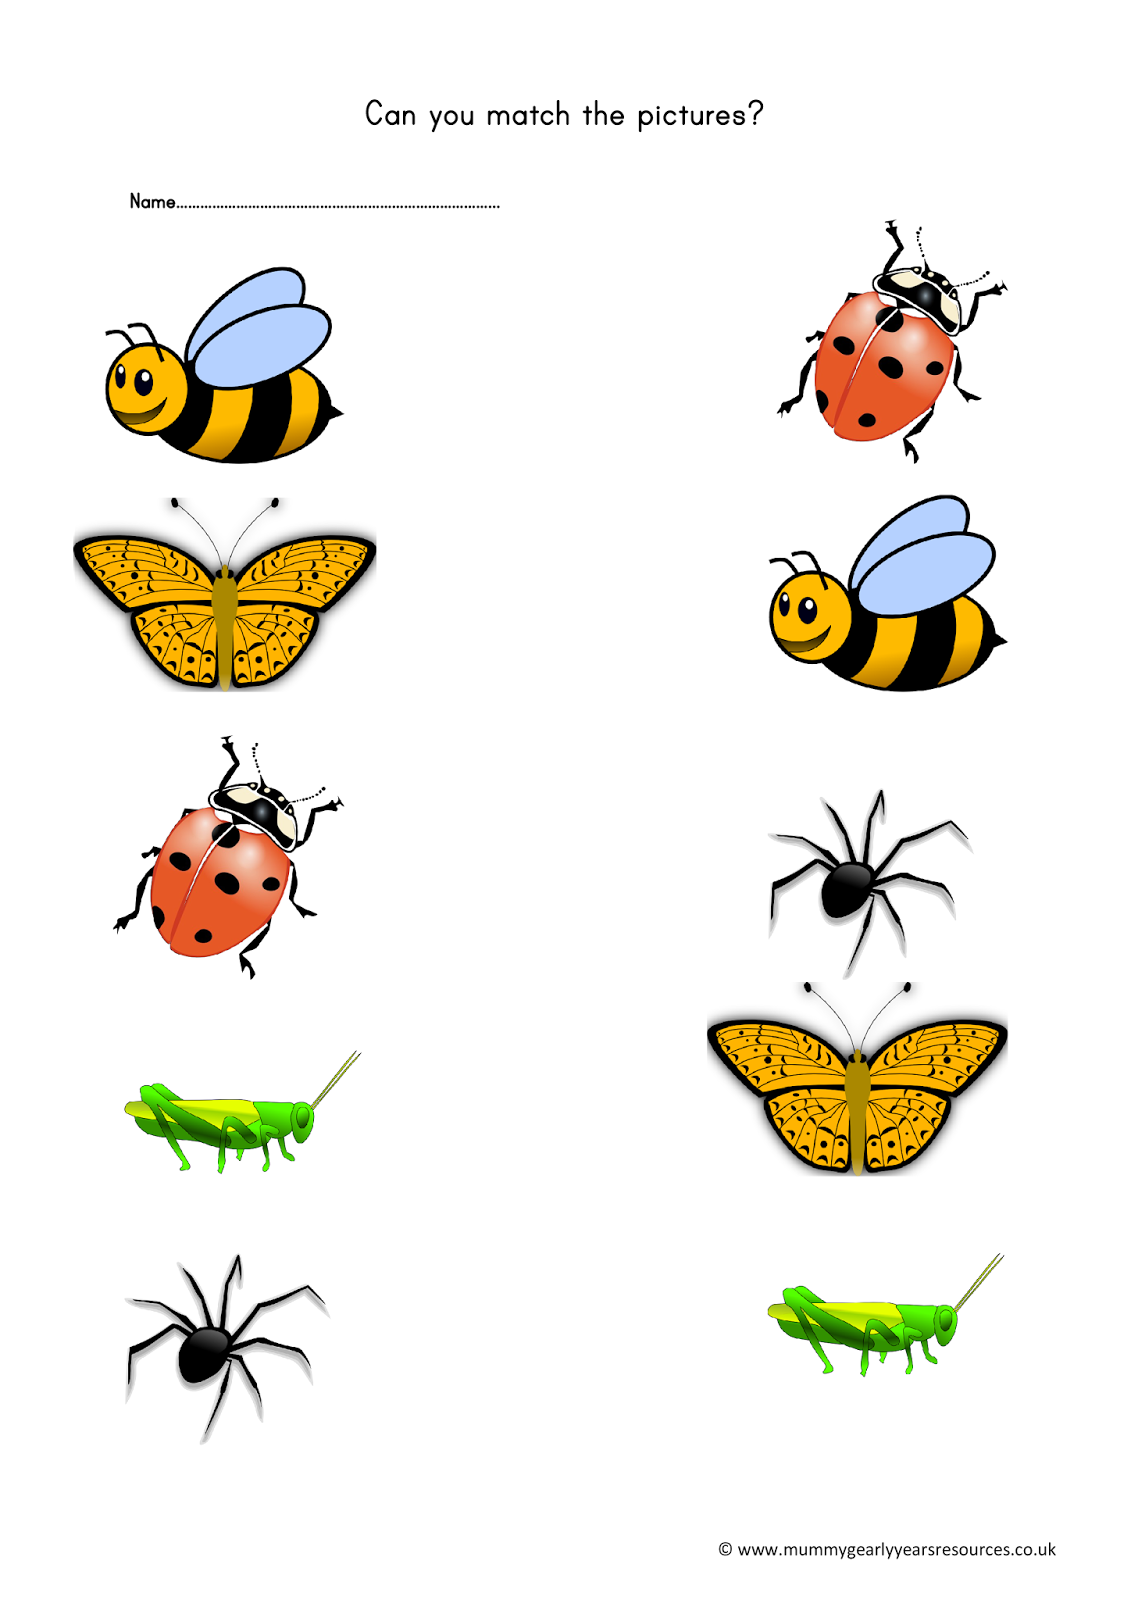 Mini Beasts Matching Pictures Worksheet